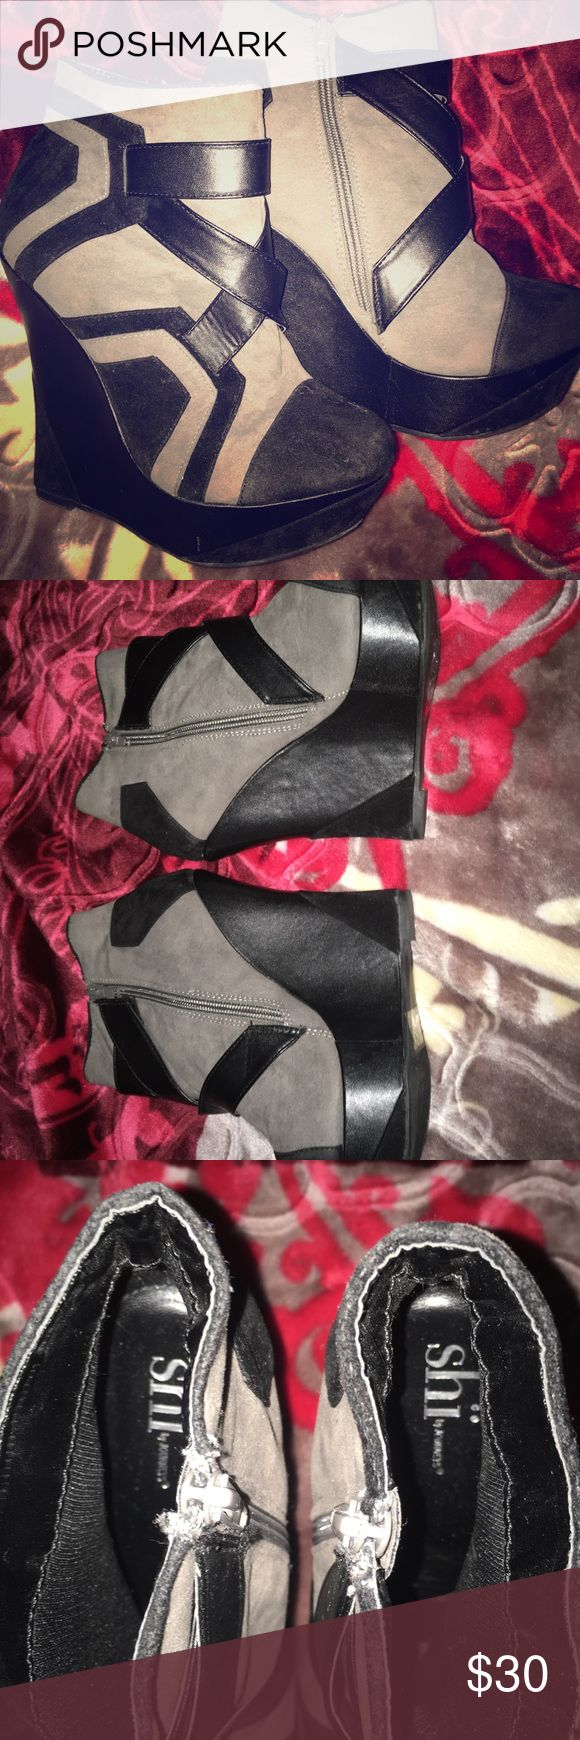 Shï Black/gray wedge pumps Size 7, worn maybe once in great condition. About 4 inch heel with some fabric insulation inside shoe for comfort. Zip up on sides. Shï By Journeys Shoes Wedges